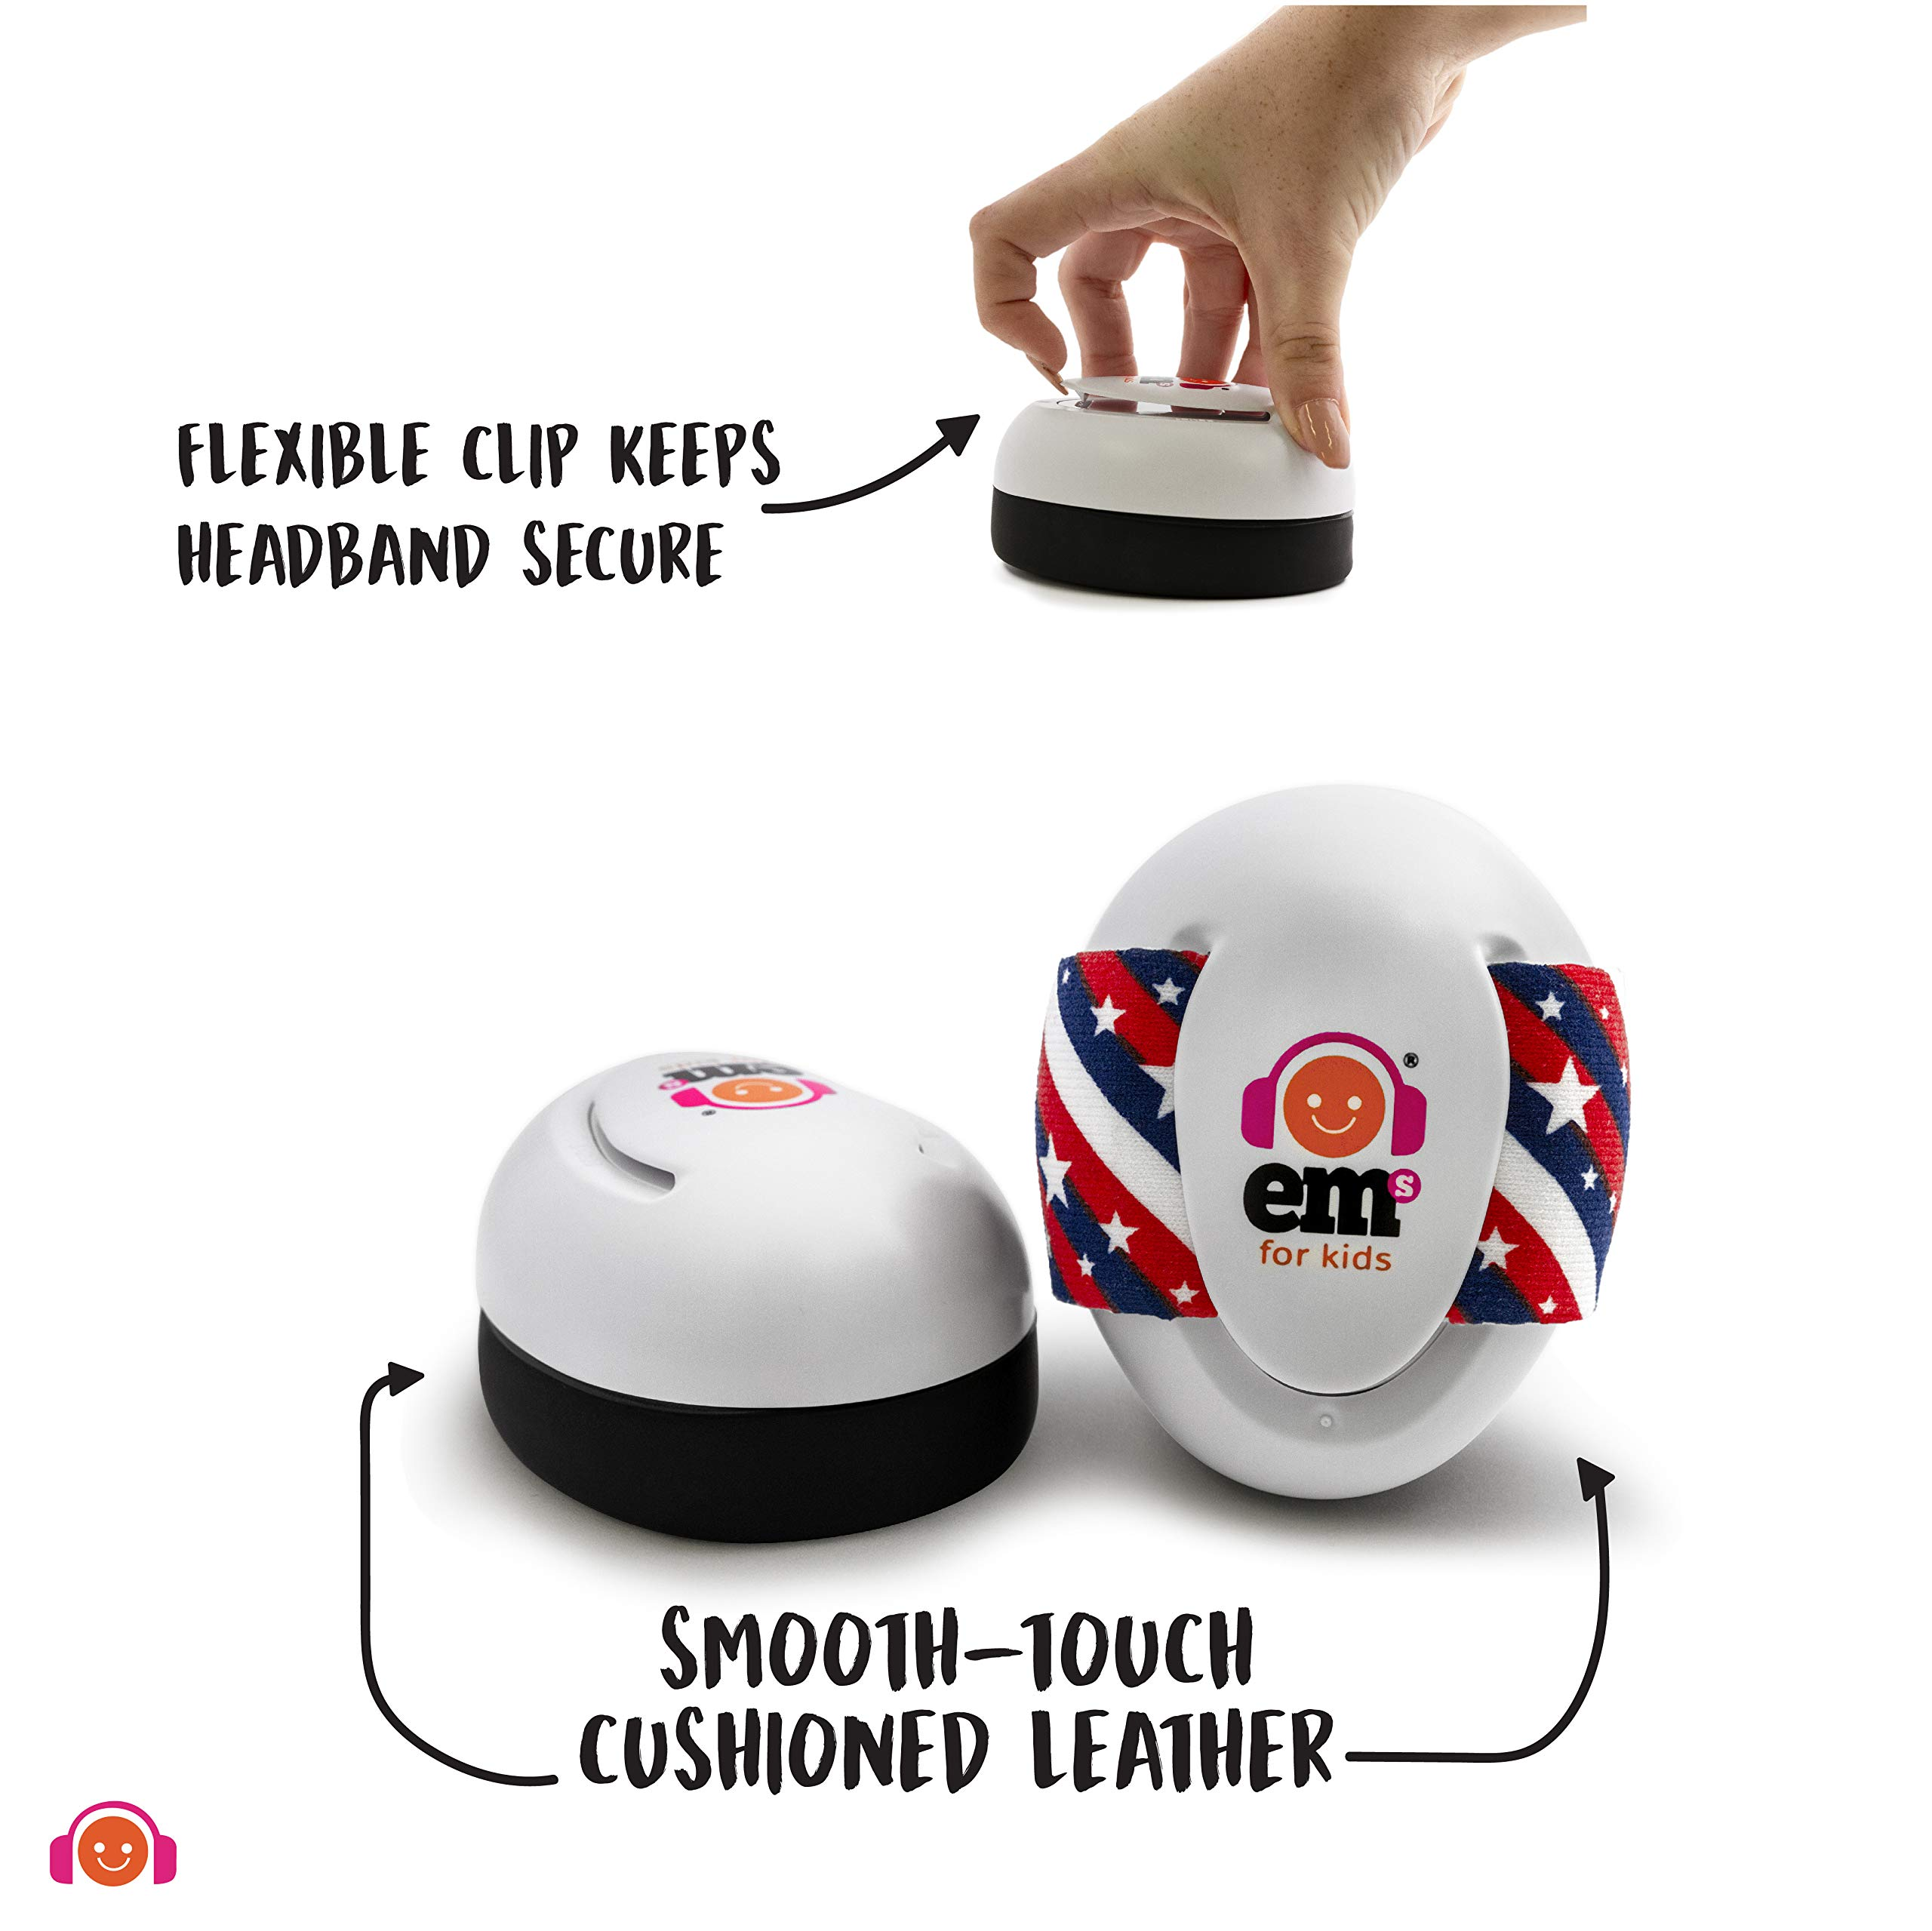 EMS for Kids Baby Earmuffs - White with Stars n Stripes. The Original Baby Earmuffs, Now Made in The USA. Great for Concerts, Music Festivals, Planes, NASCAR, Motor Racing, Power Tools and More! by Ems for Kids (Image #5)